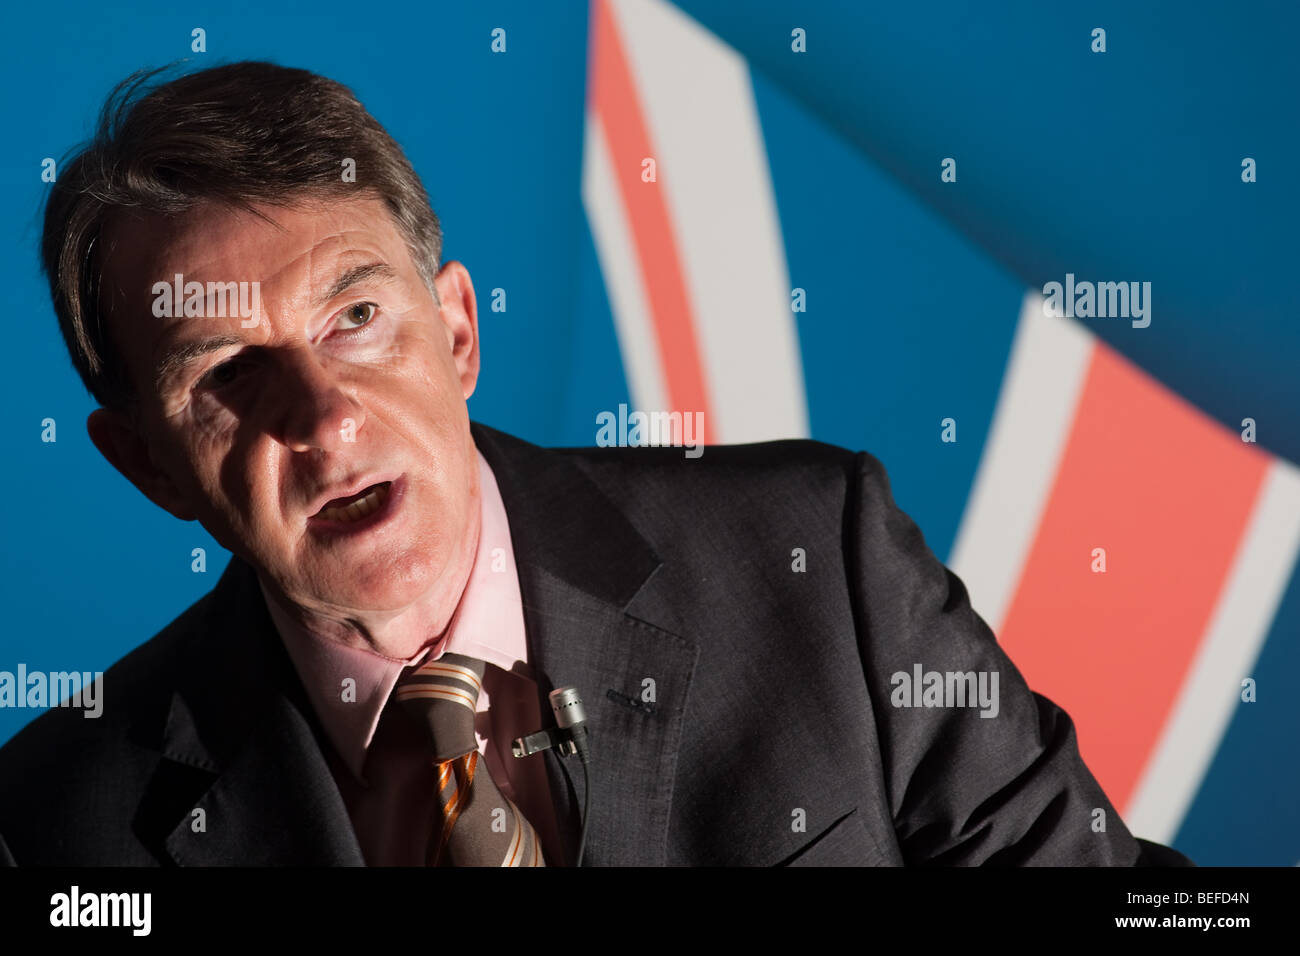 Lord Peter Benjamin Mandelson, Labour Party politician. - Stock Image